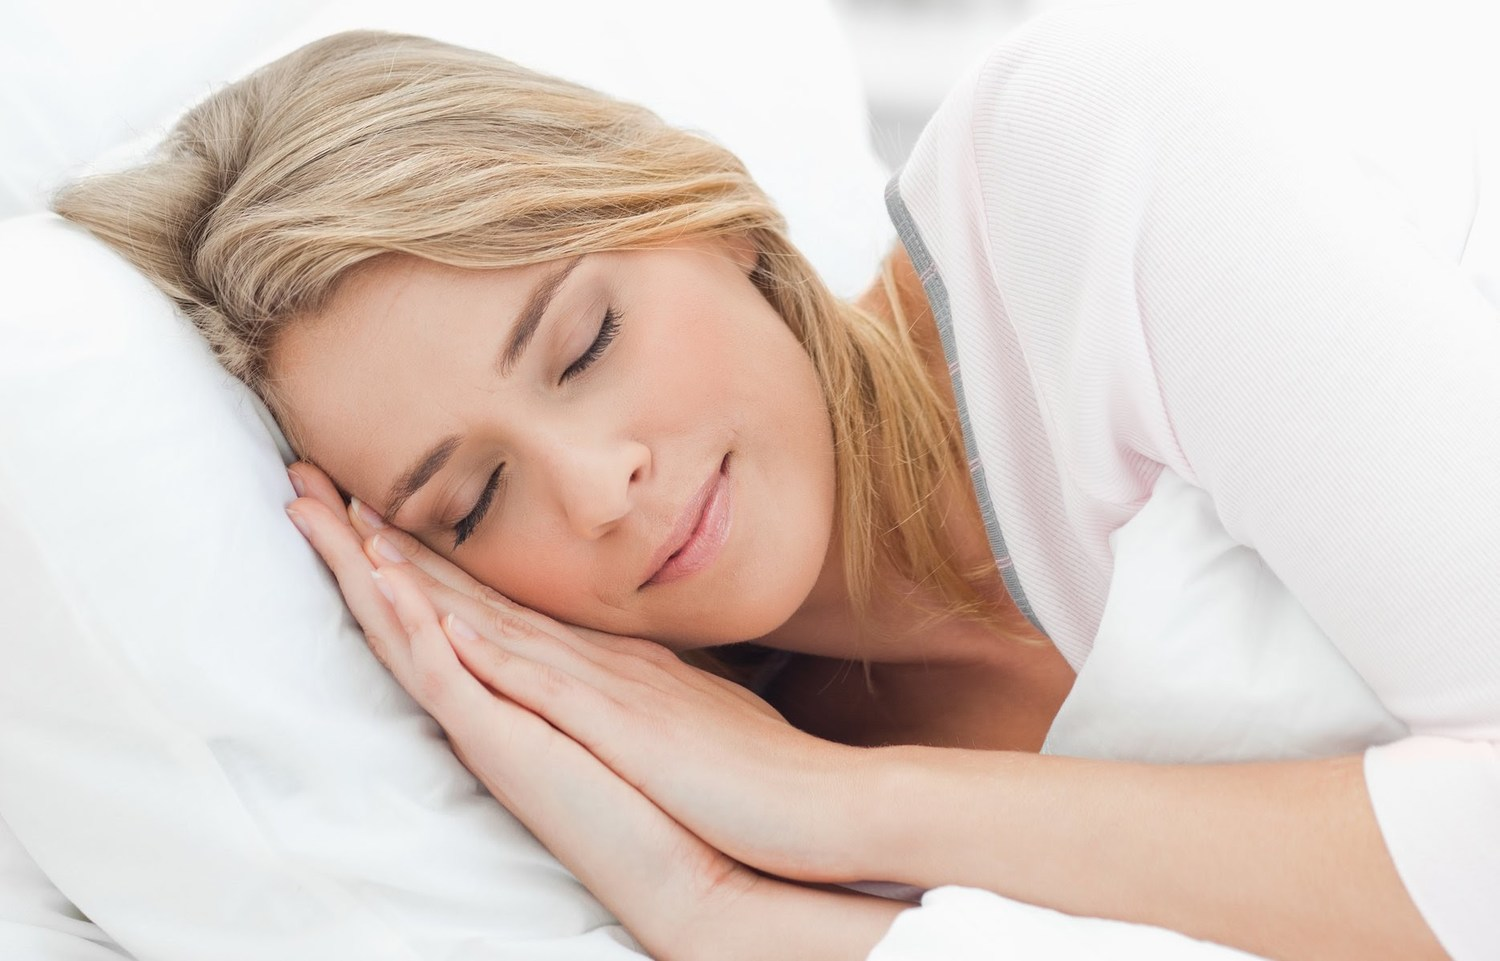 Healthy Ways To Advance Your Sleeping Habits